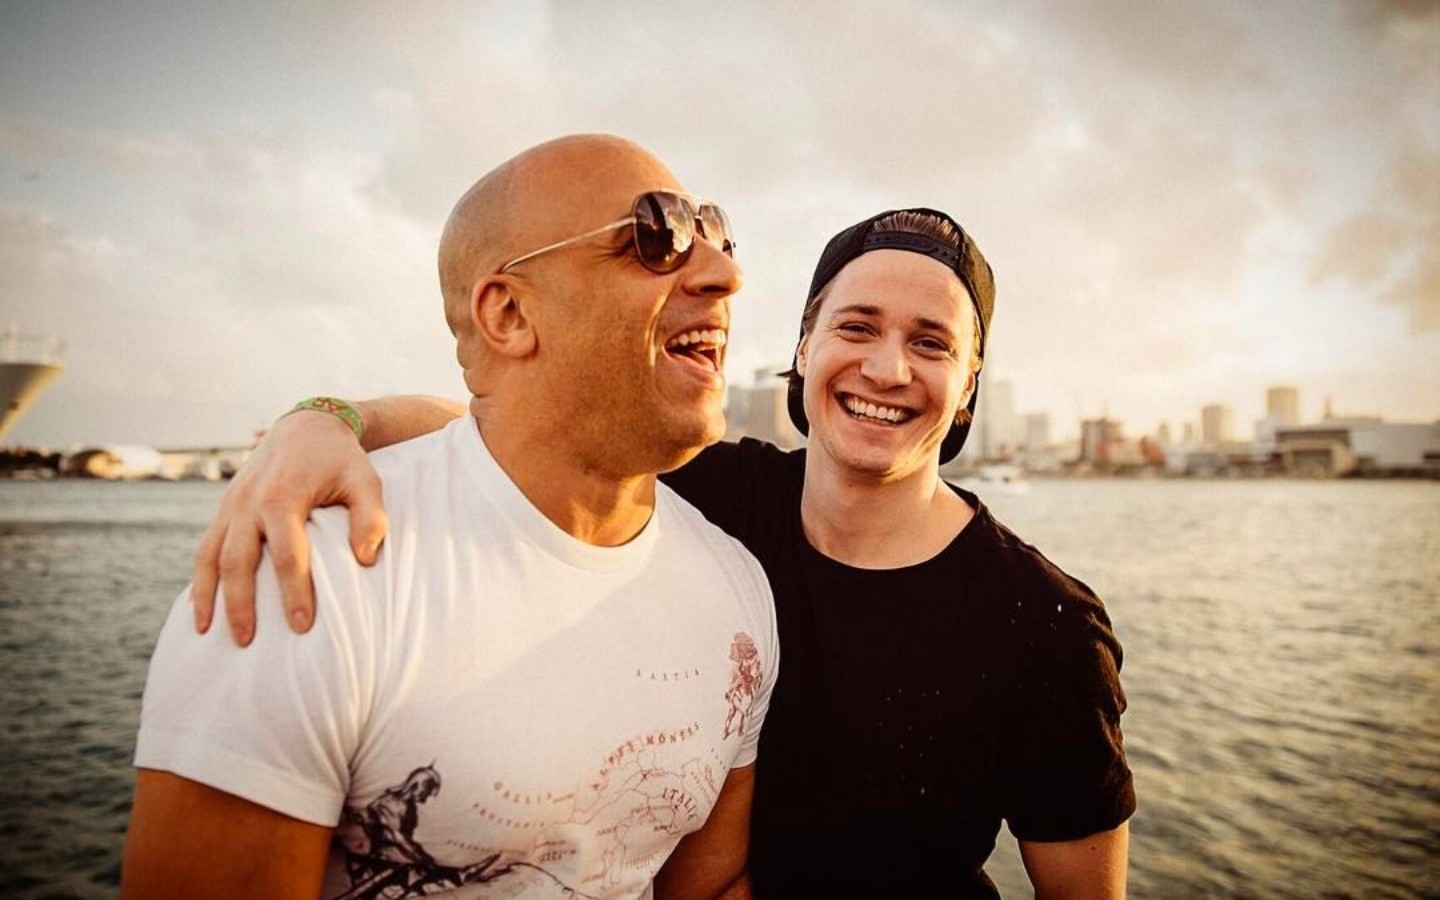 Vin Diesel And Kygo